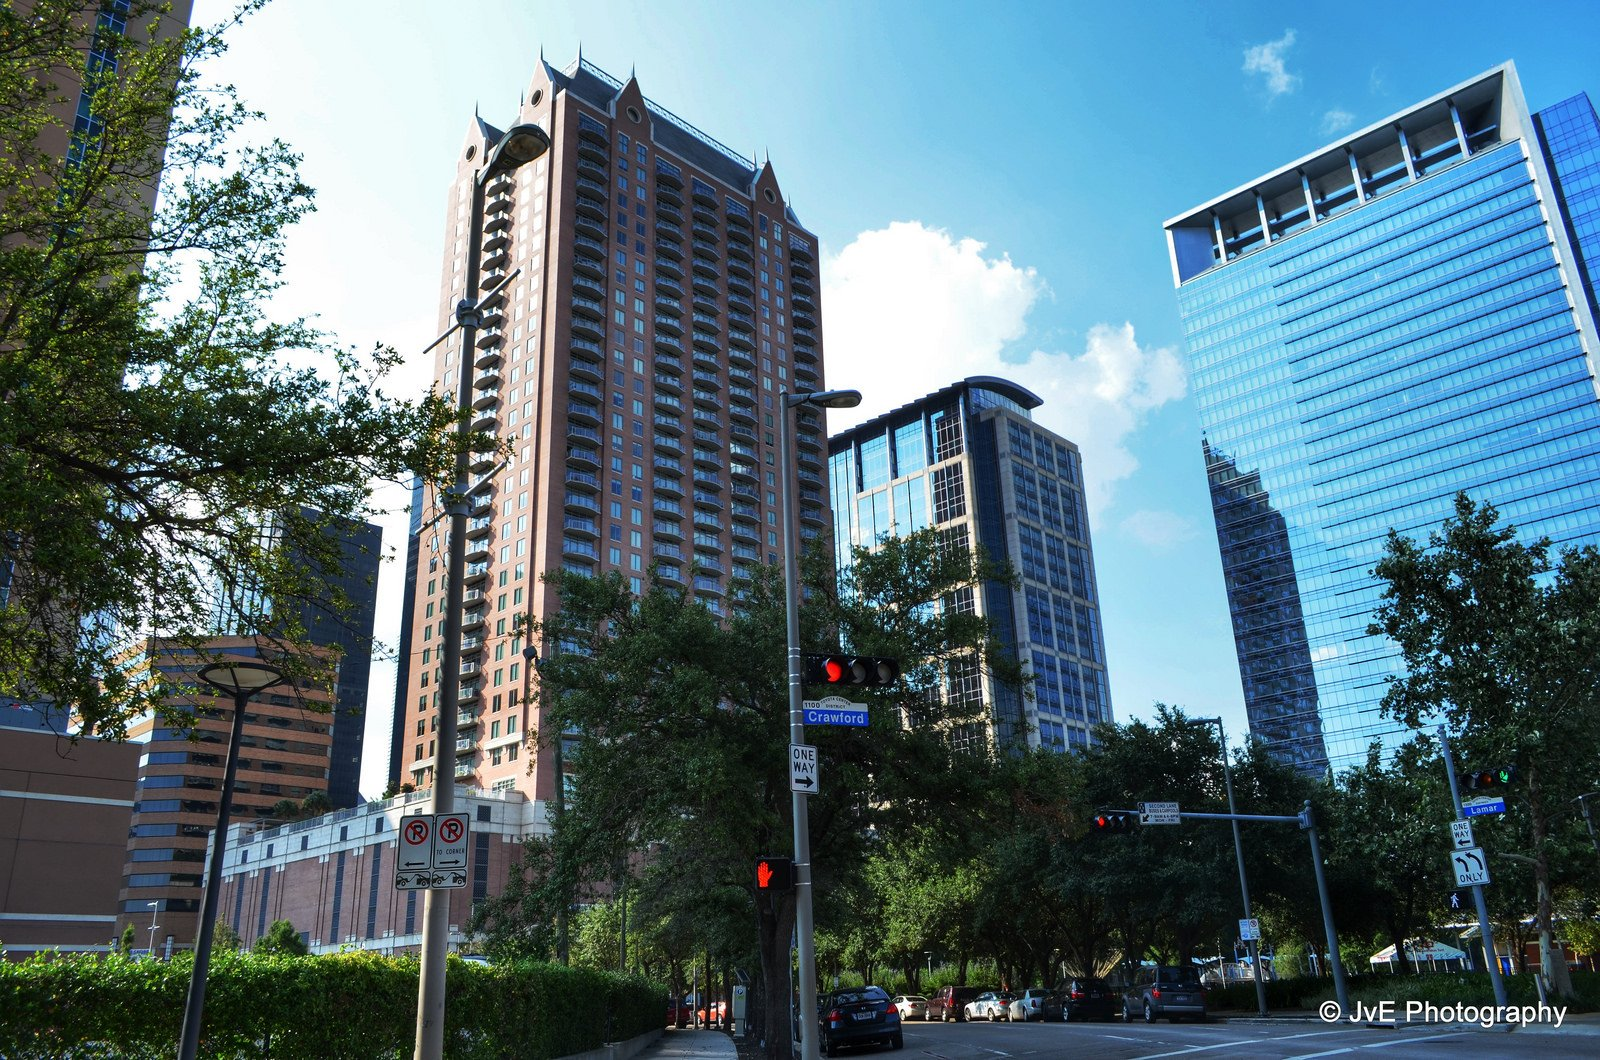 Houston architecture bridges cities City texas Night towers buildings USA Downtown offices storehouses stores